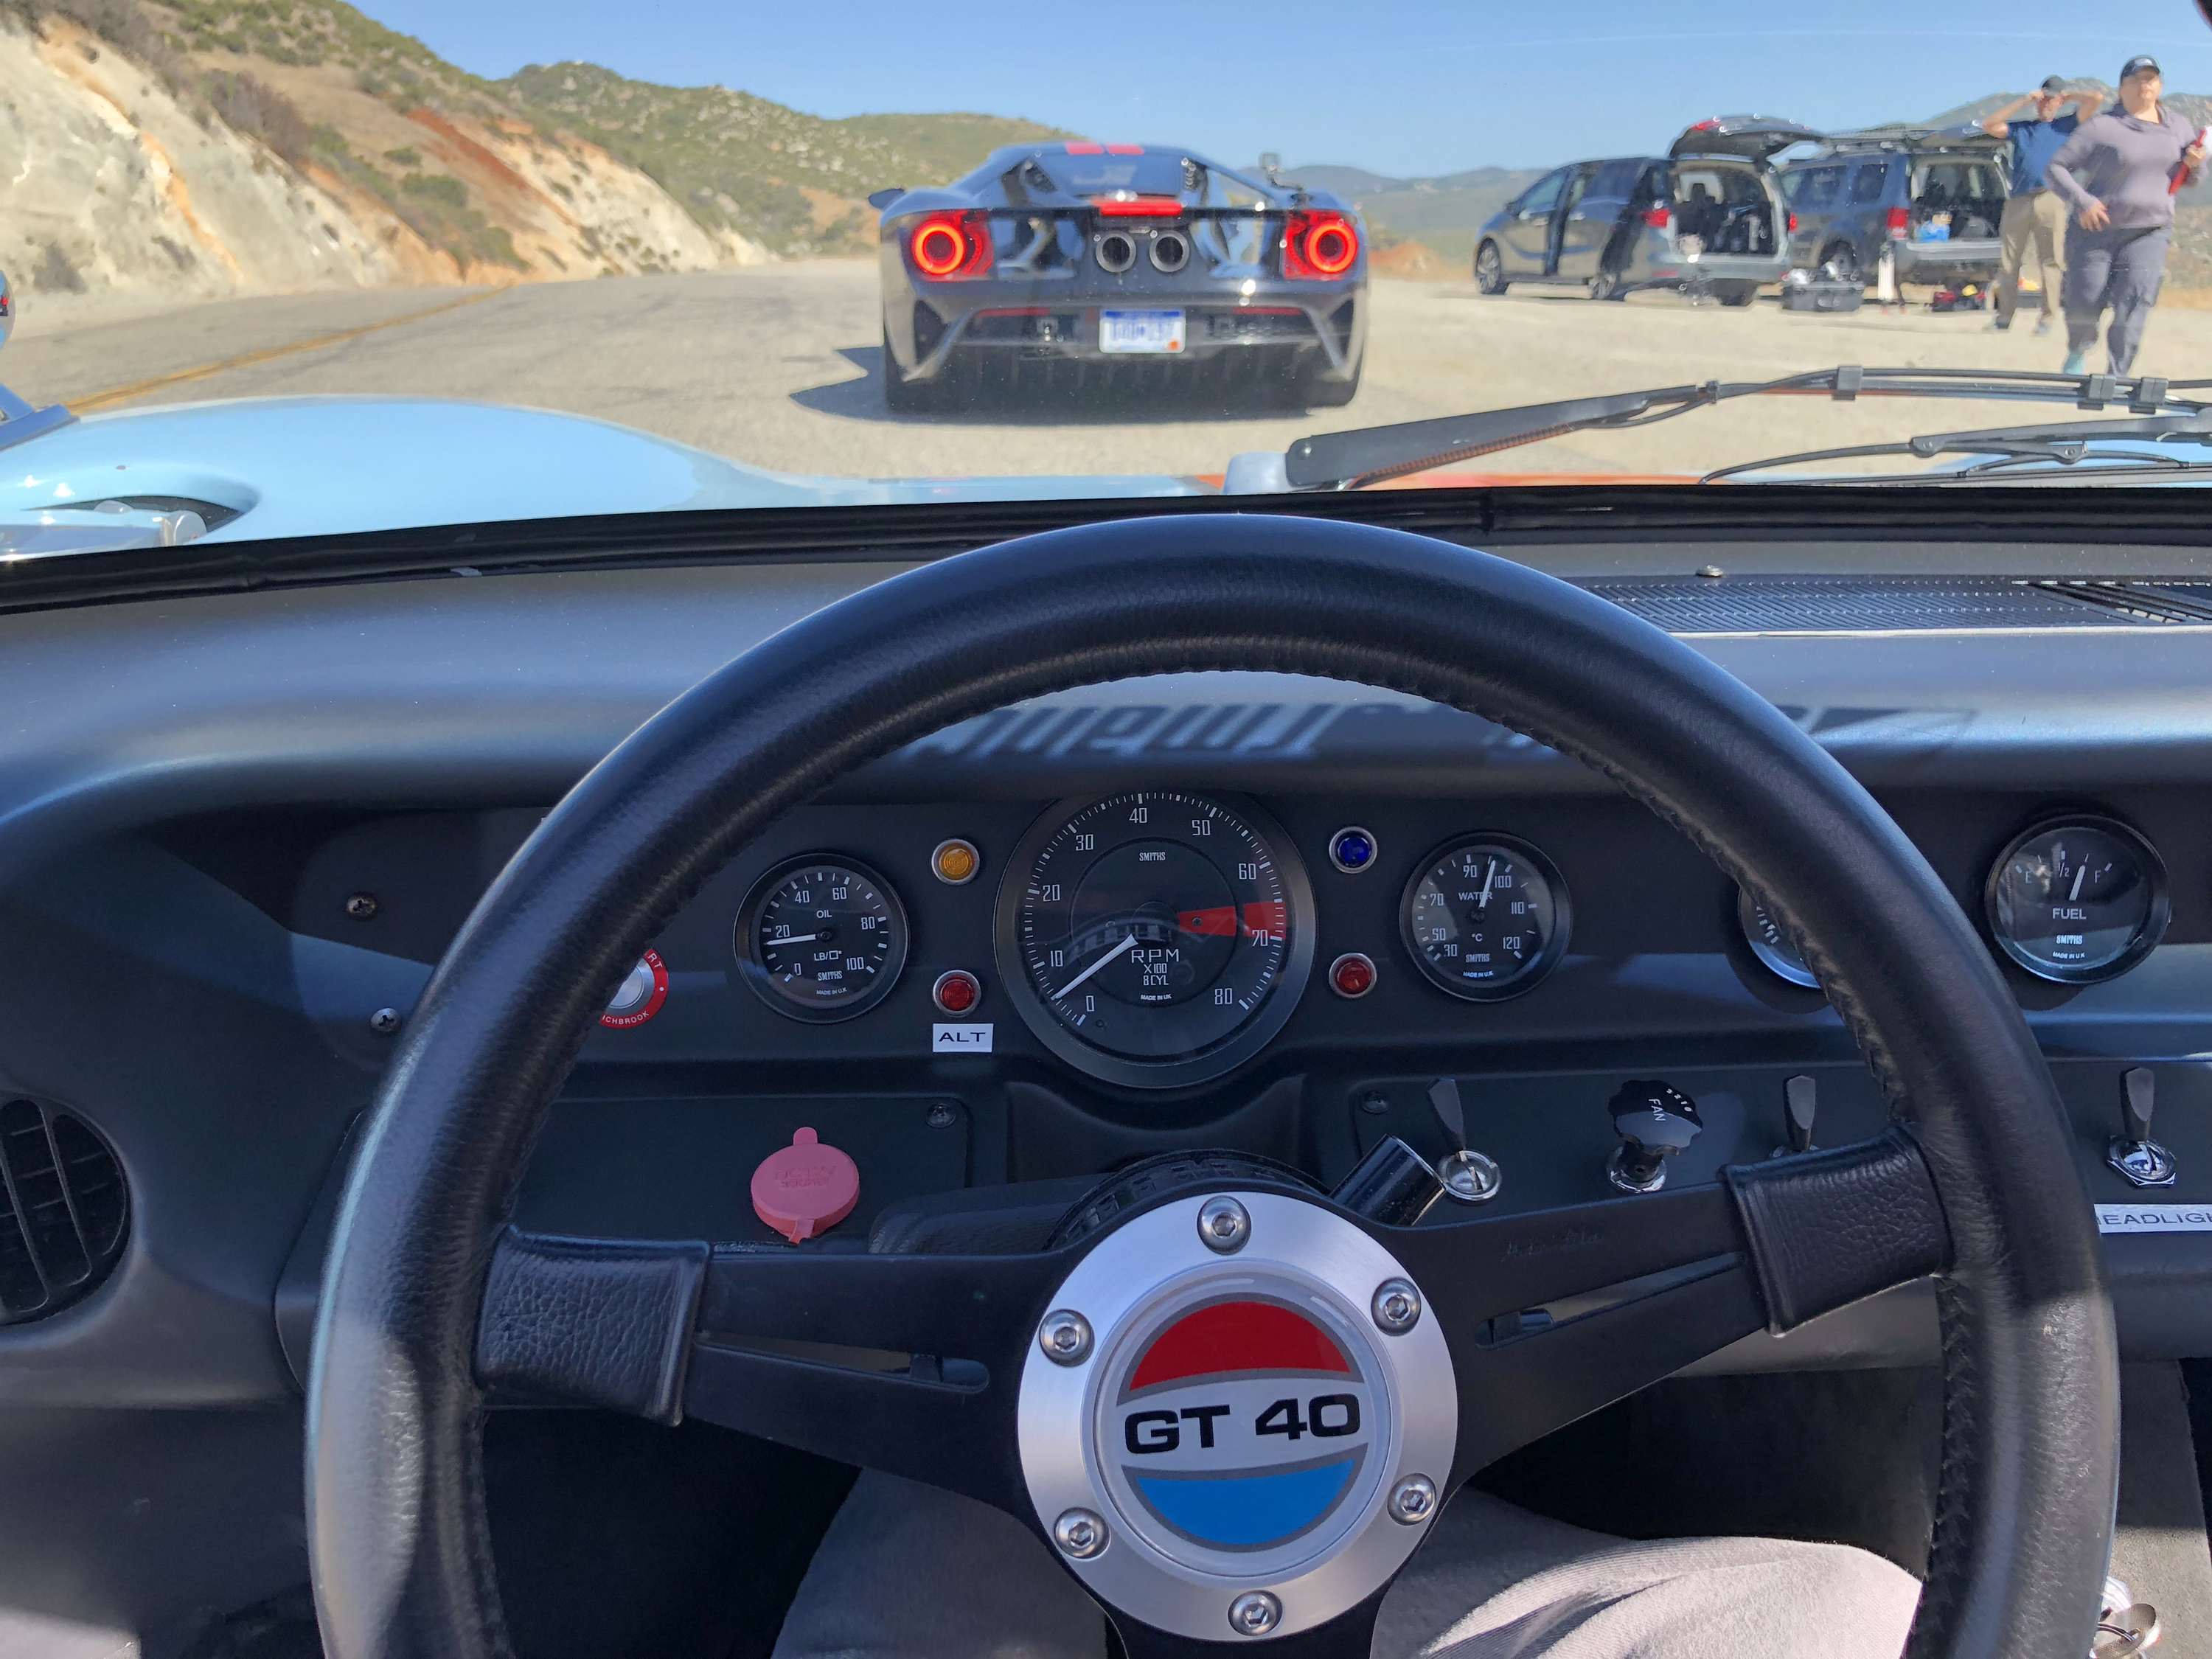 Ford GT40 Steering Wheel Comparison Shoot